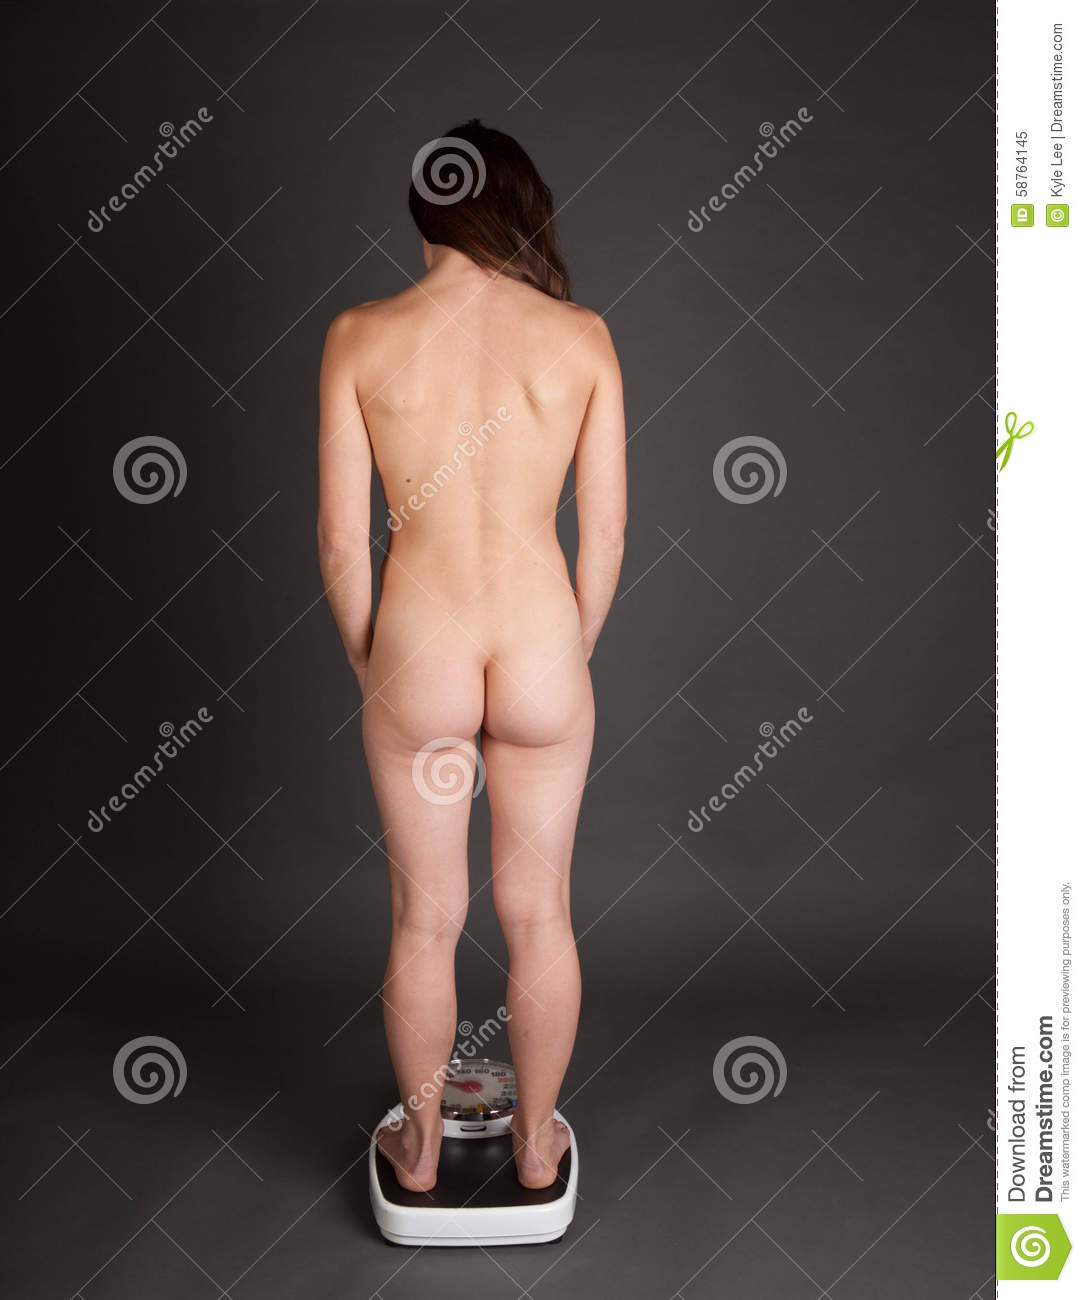 Nude Woman On Scale Stock Image Image Of Bodycare -2039